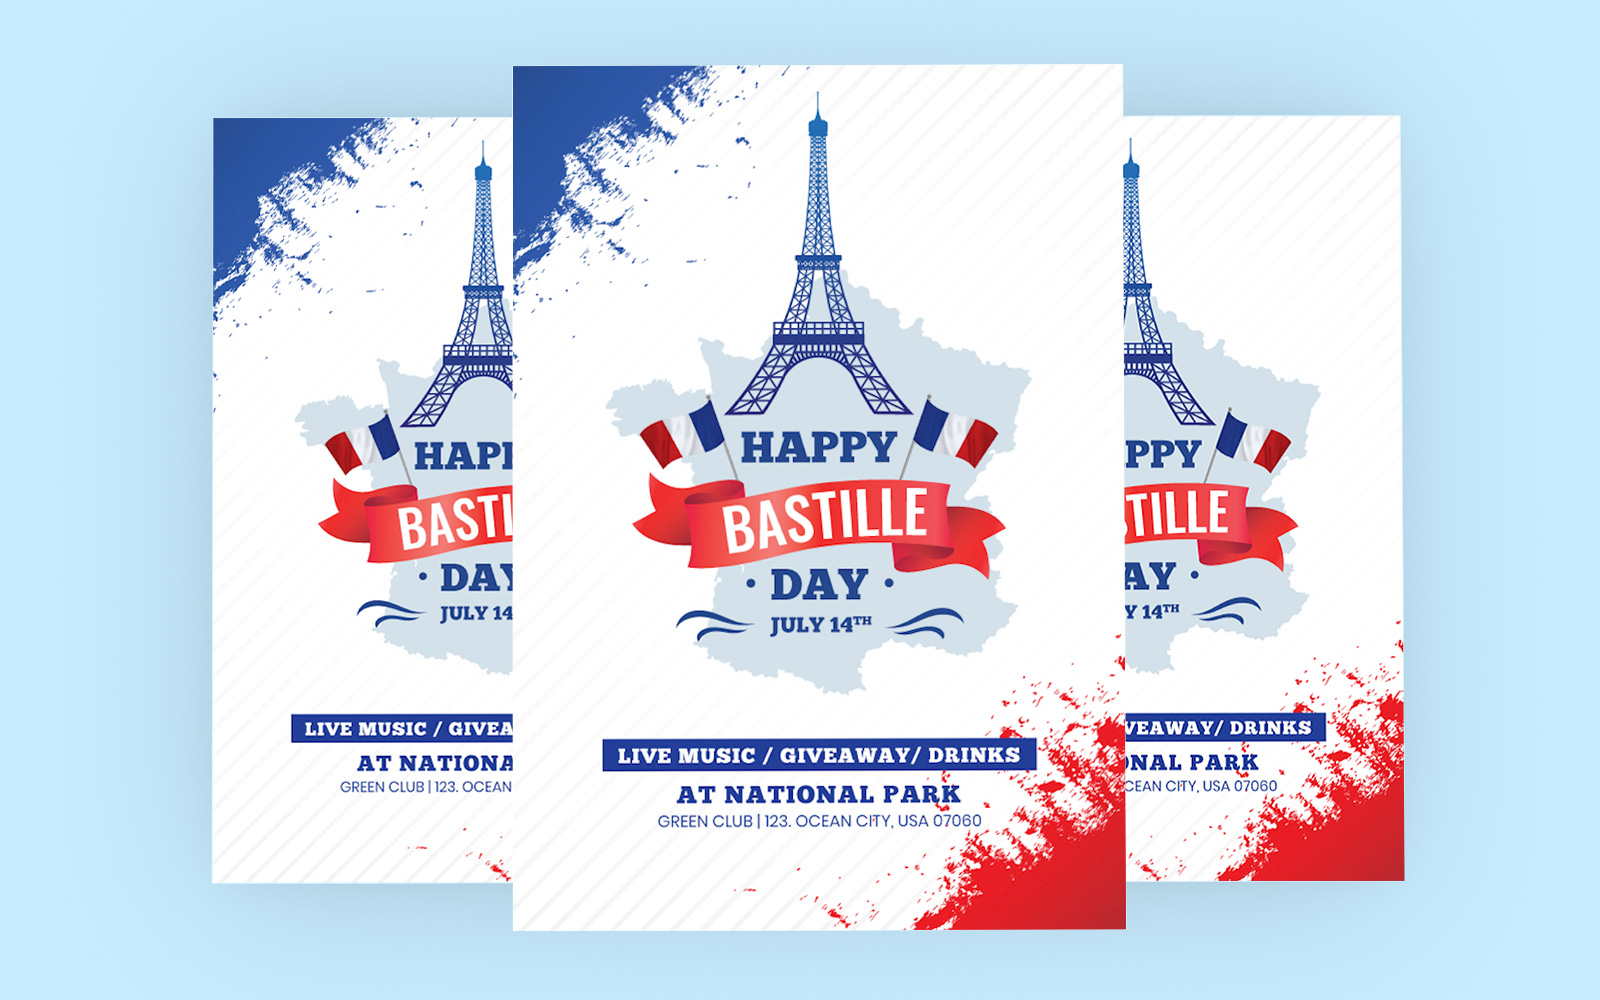 Bastille Day Template de Identidade Corporativa №122481